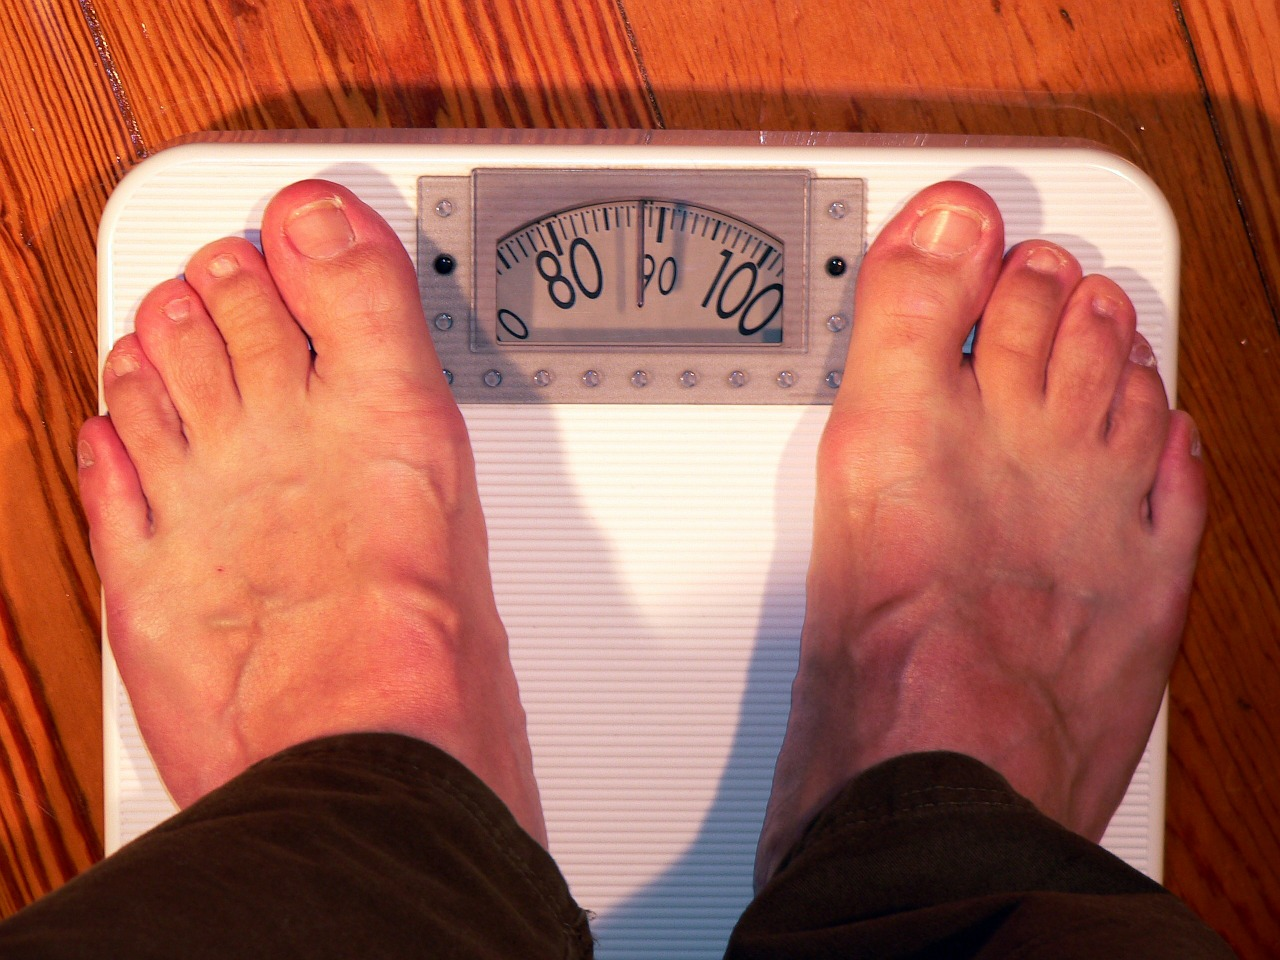 How to control your Obesity and stay fit